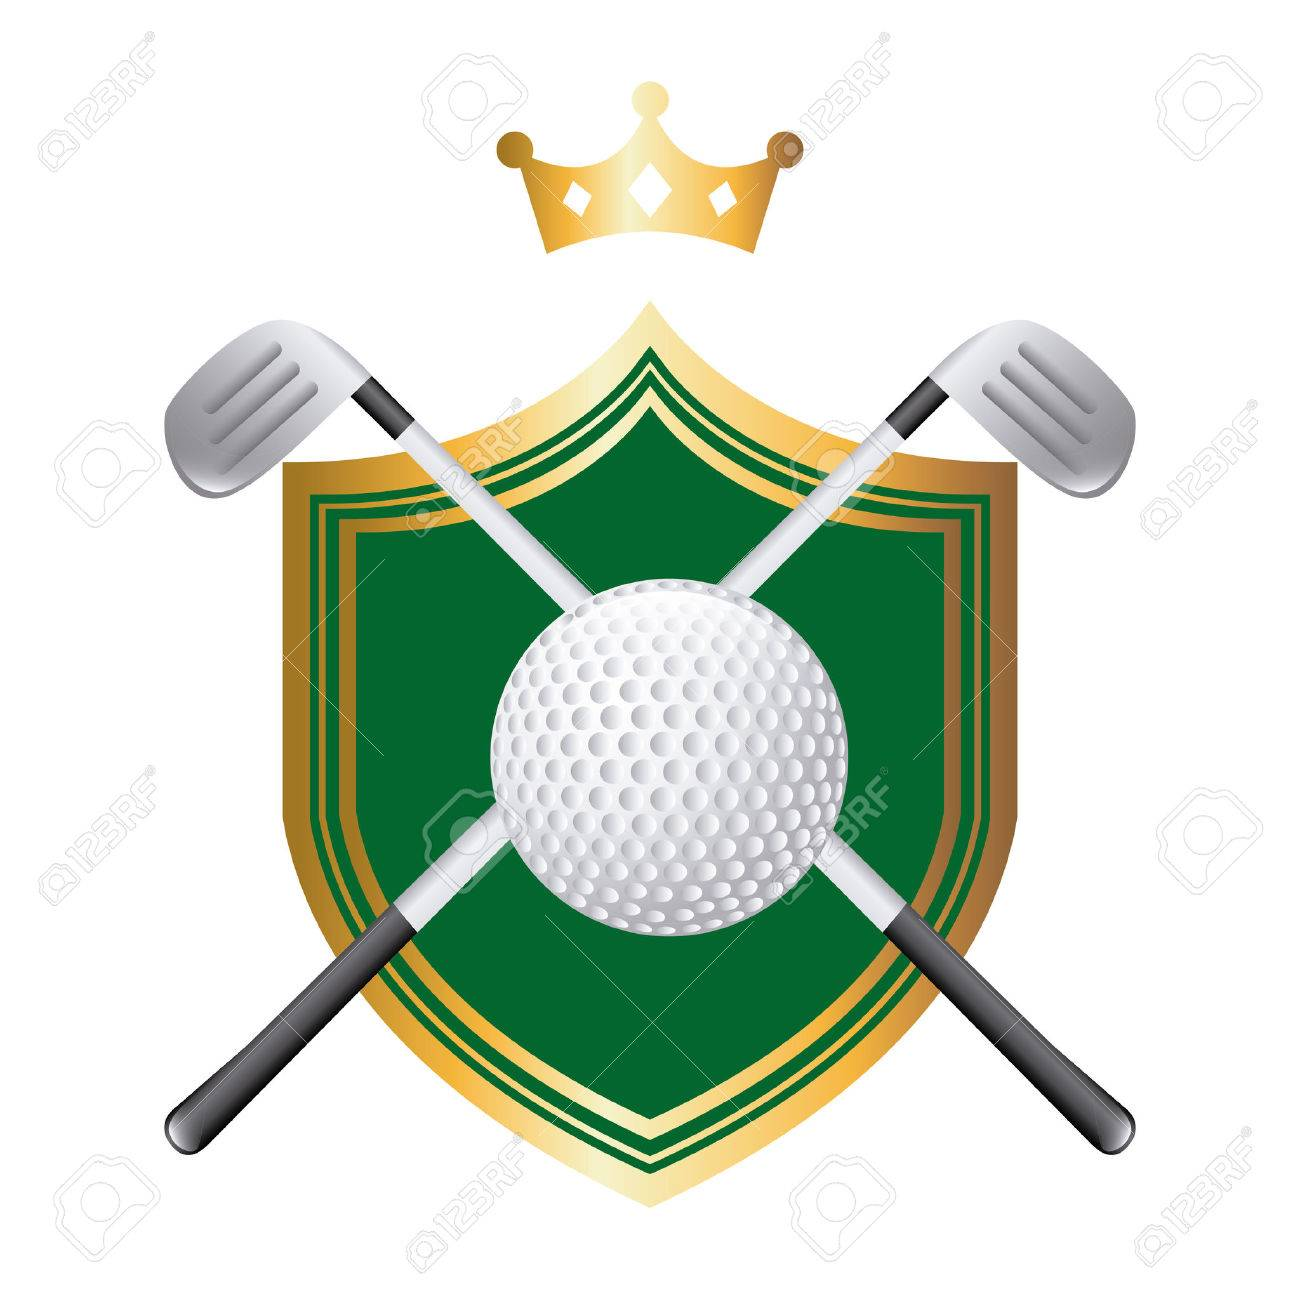 golf graphic design vector illustration royalty free cliparts rh 123rf com golf ball on tee graphic golf ball graphic images